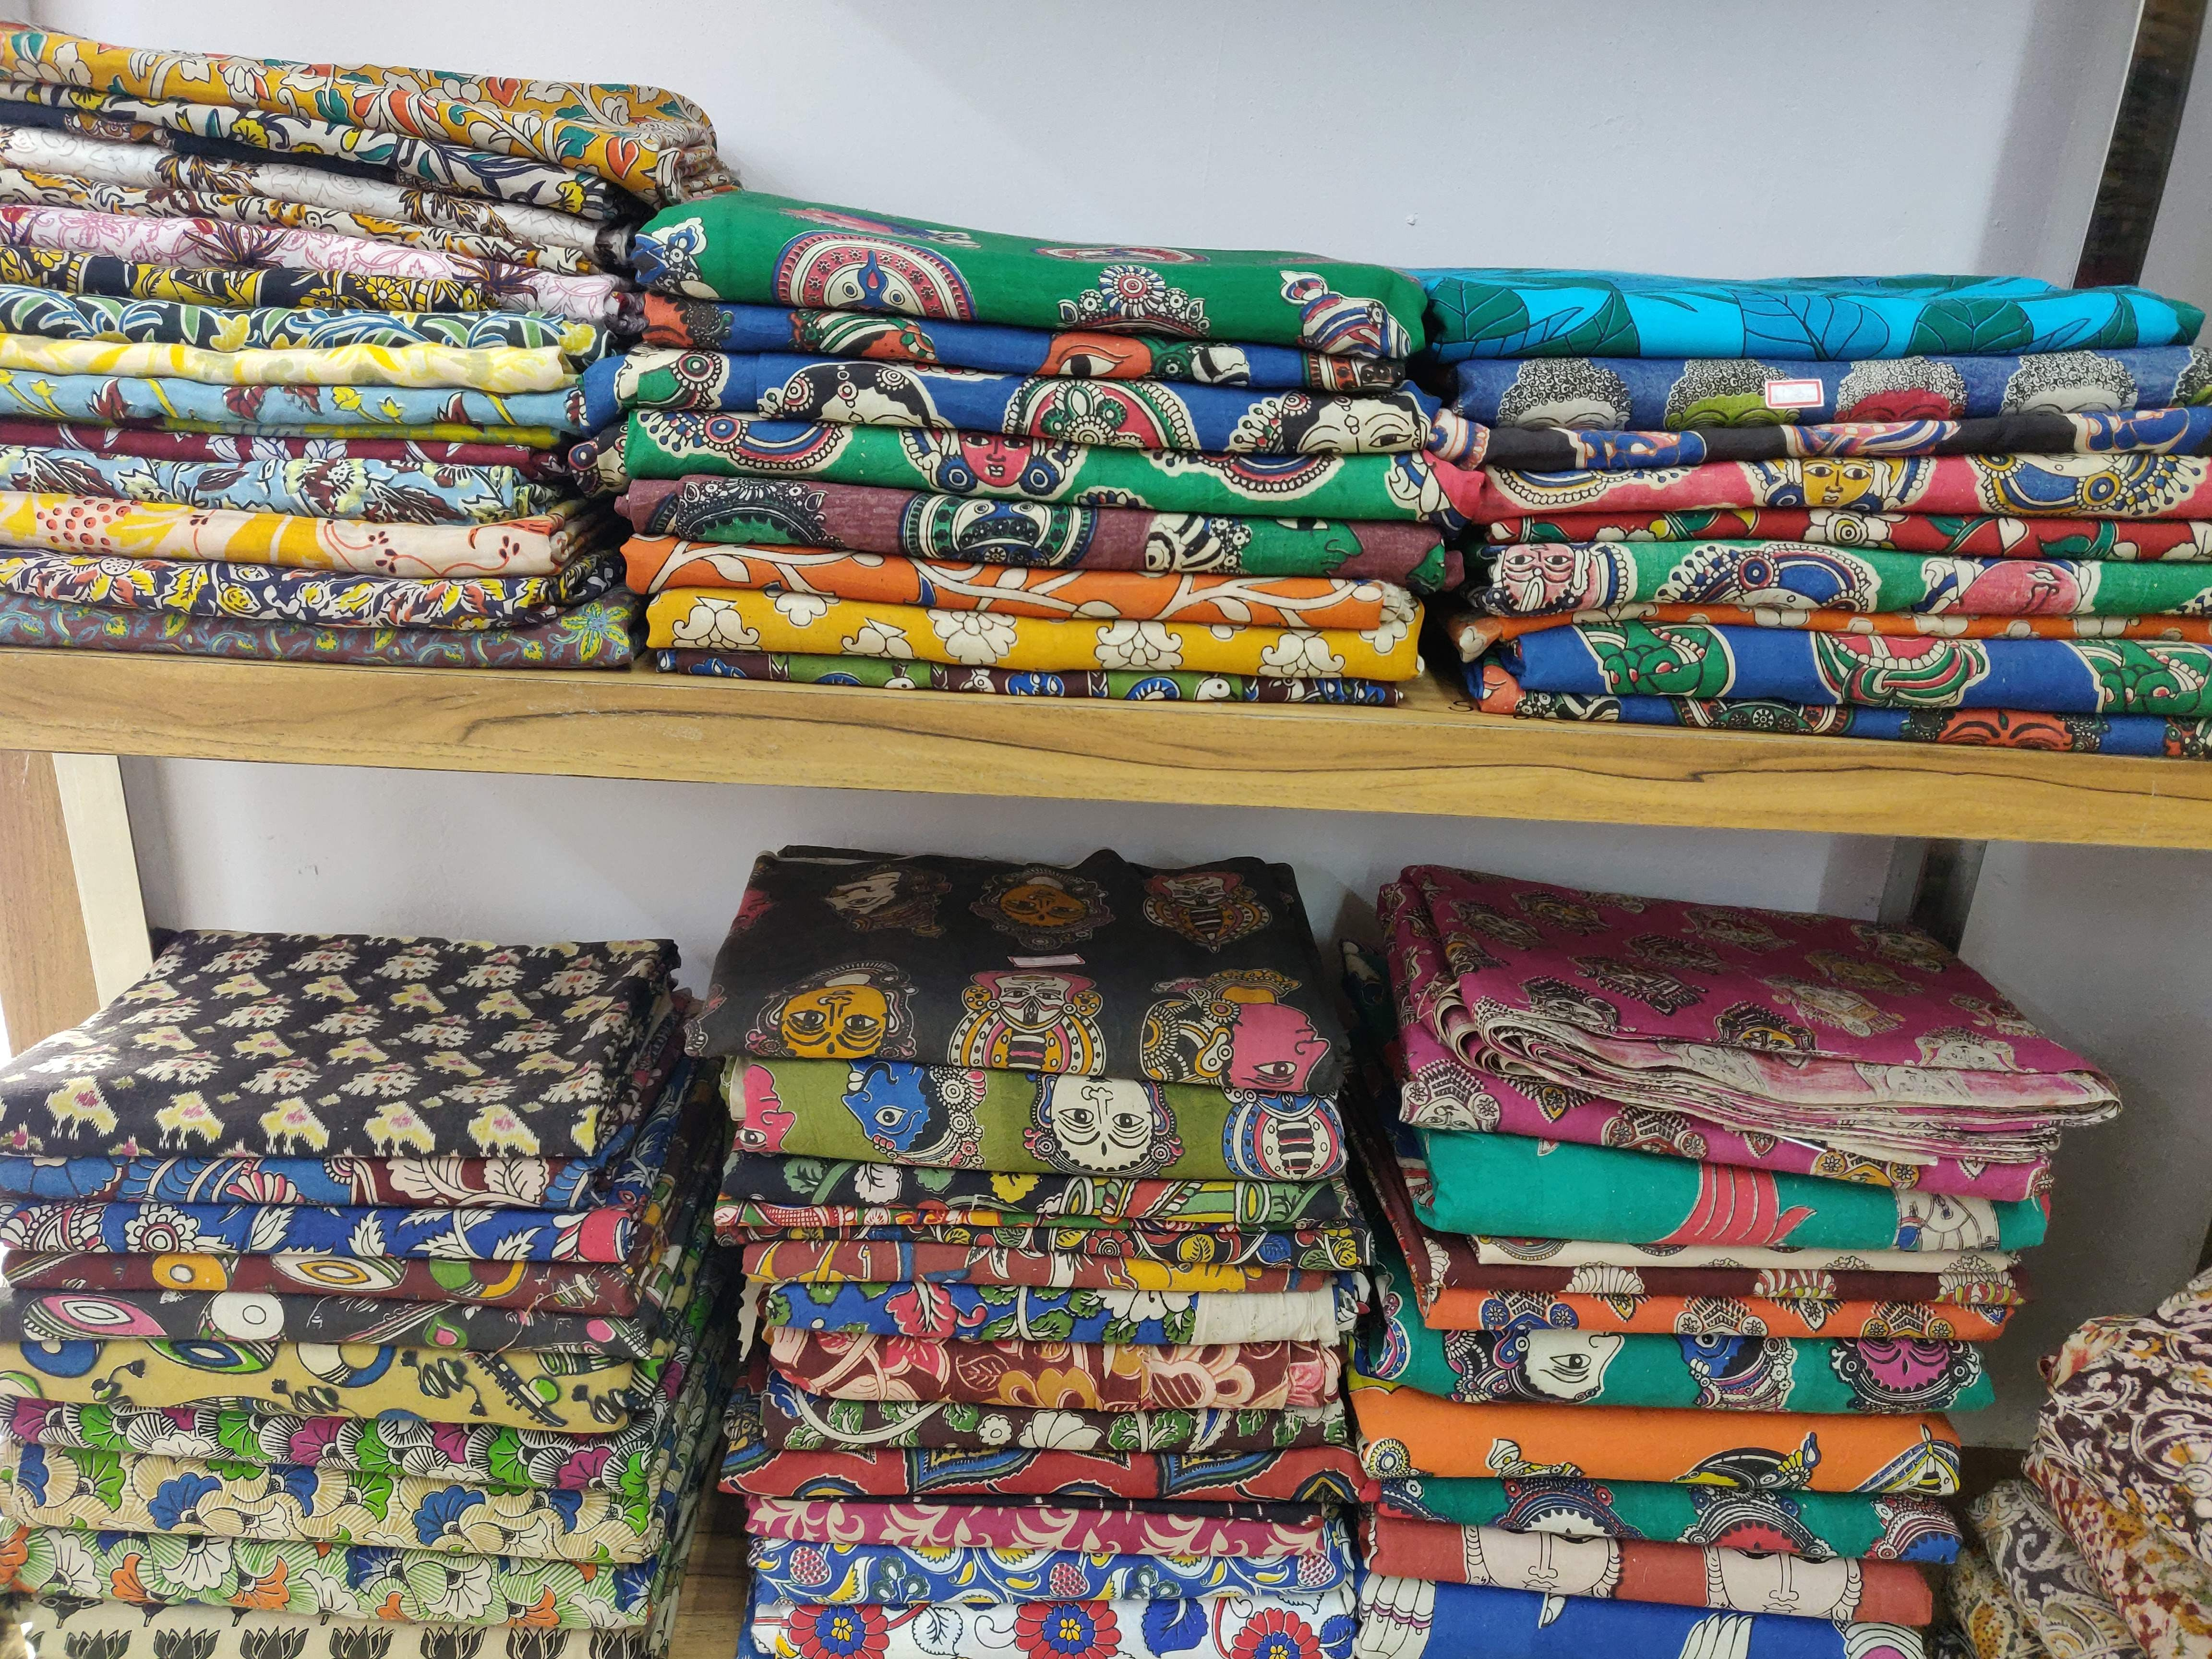 Product,Toy,Textile,Supermarket,Grocery store,Convenience store,Collection,Retail,Snack,Souvenir